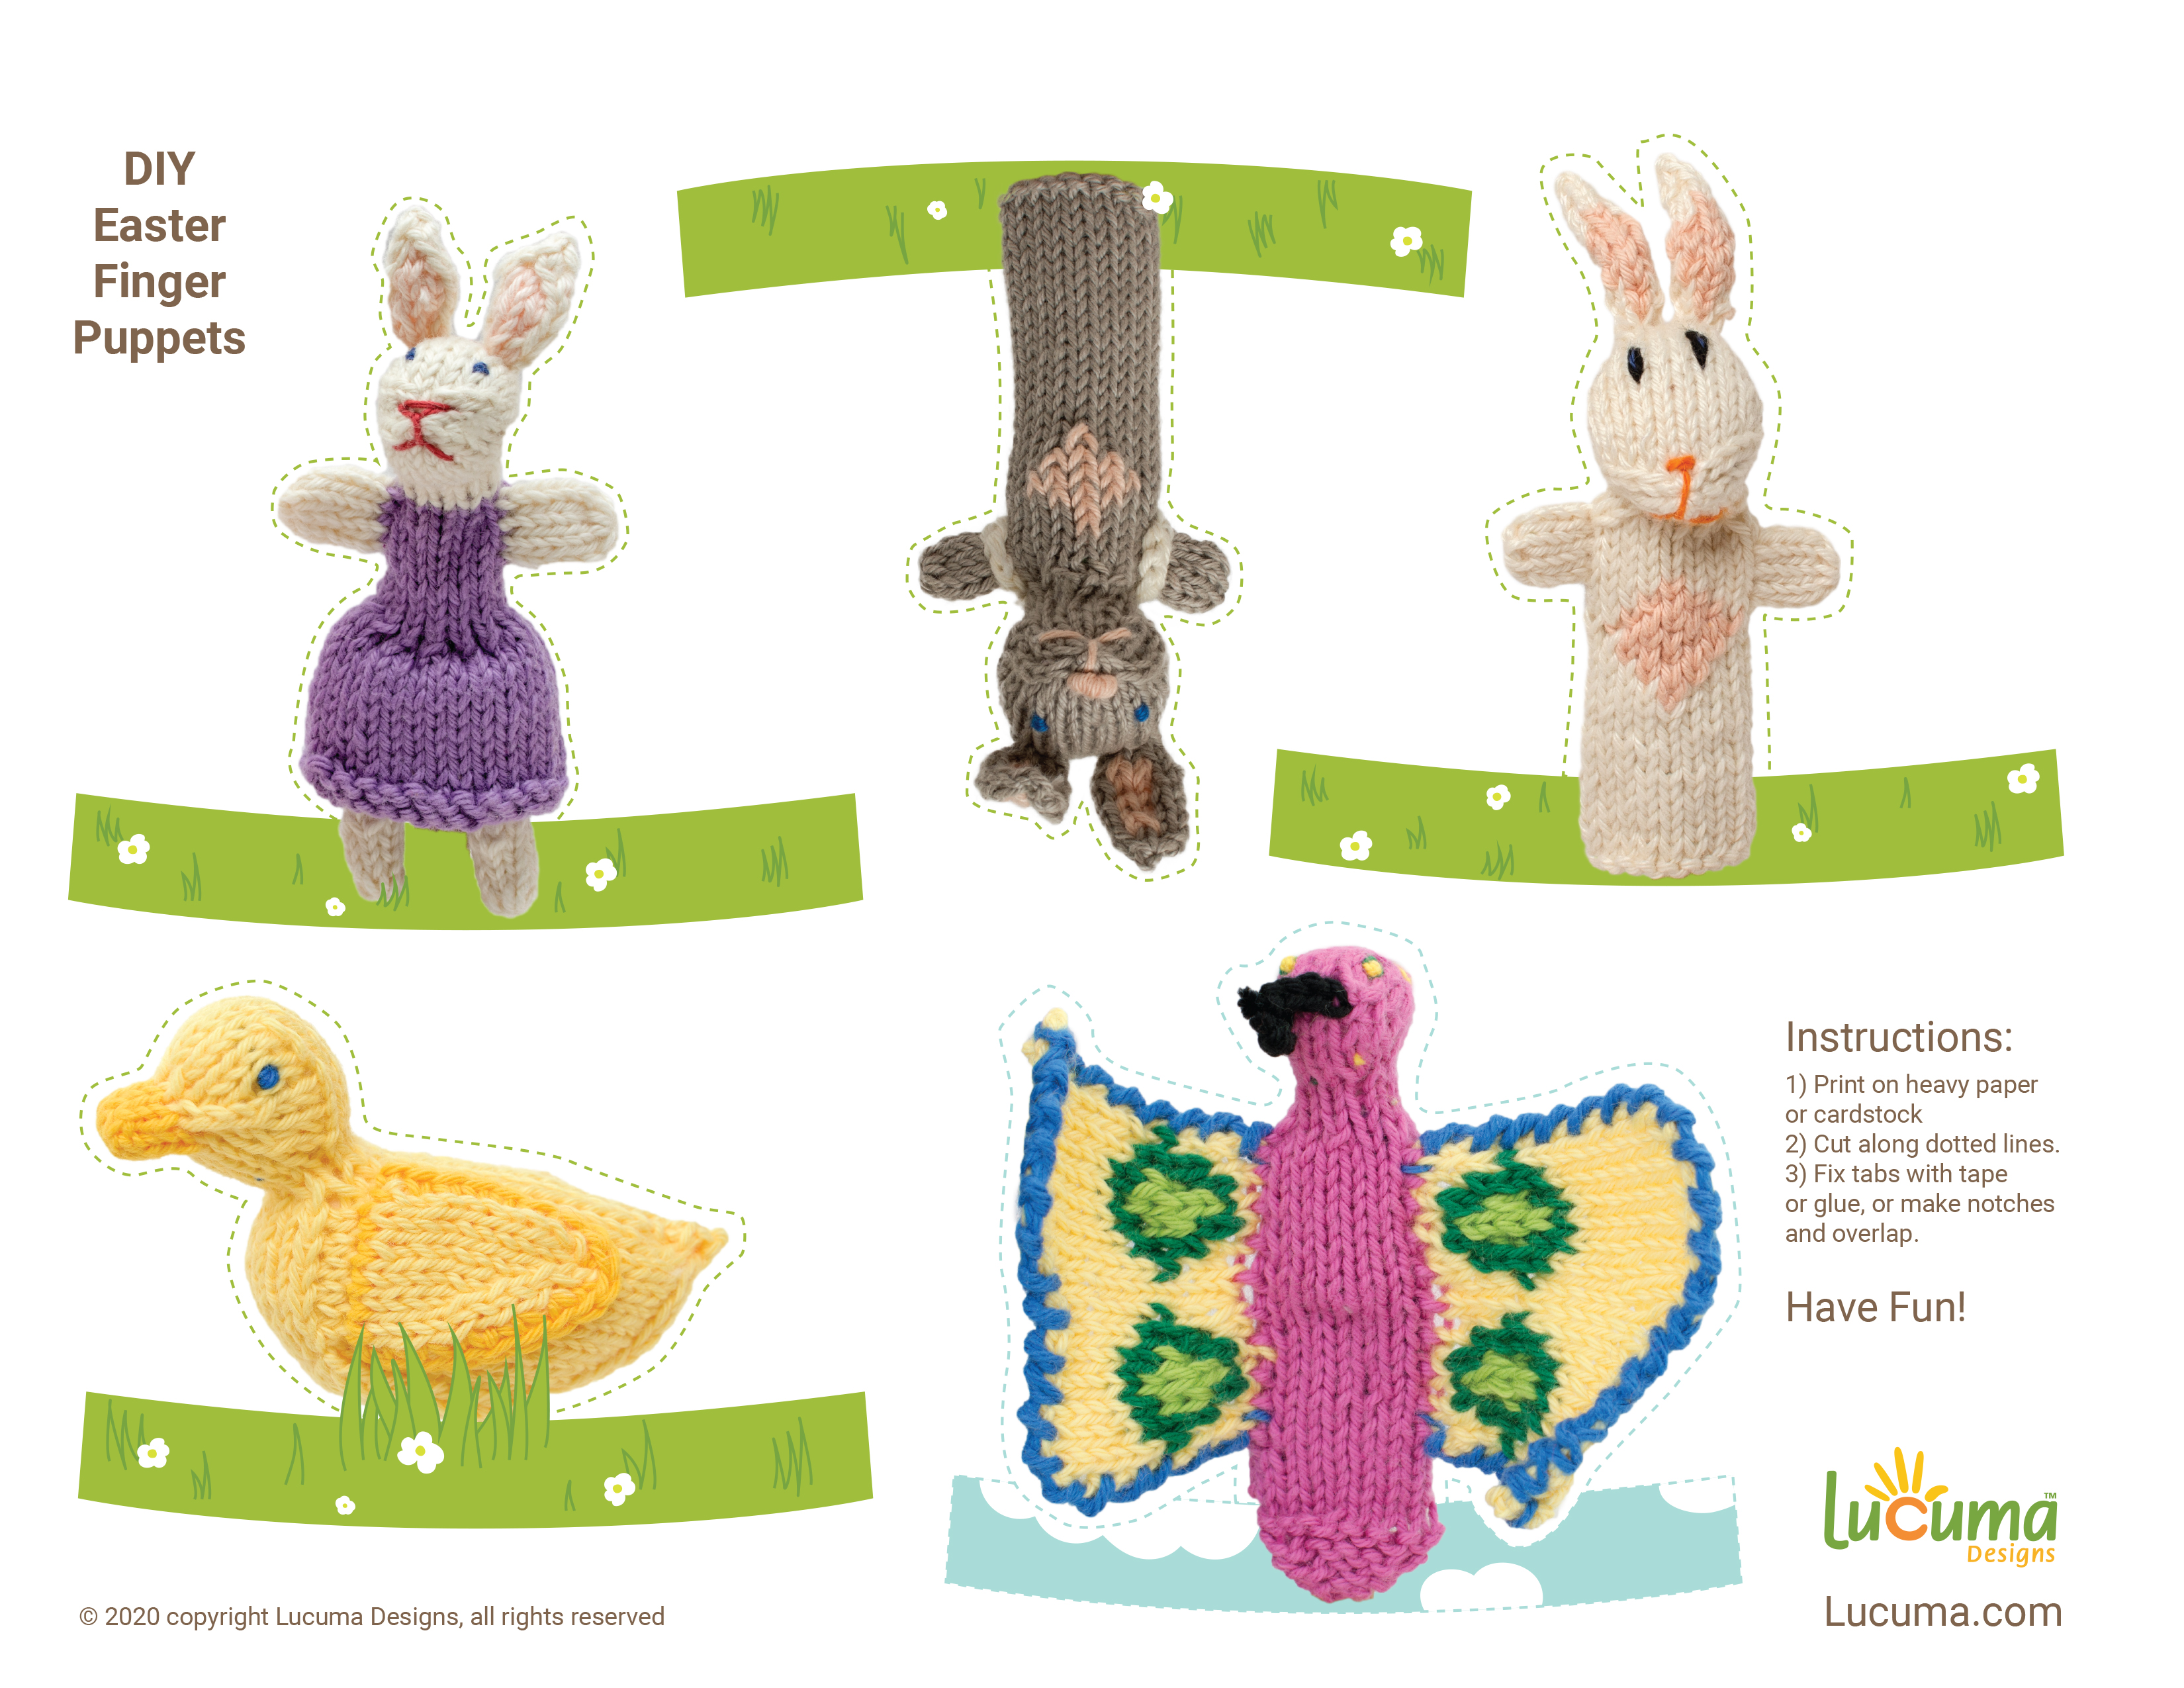 DIY Easter Finger Puppets